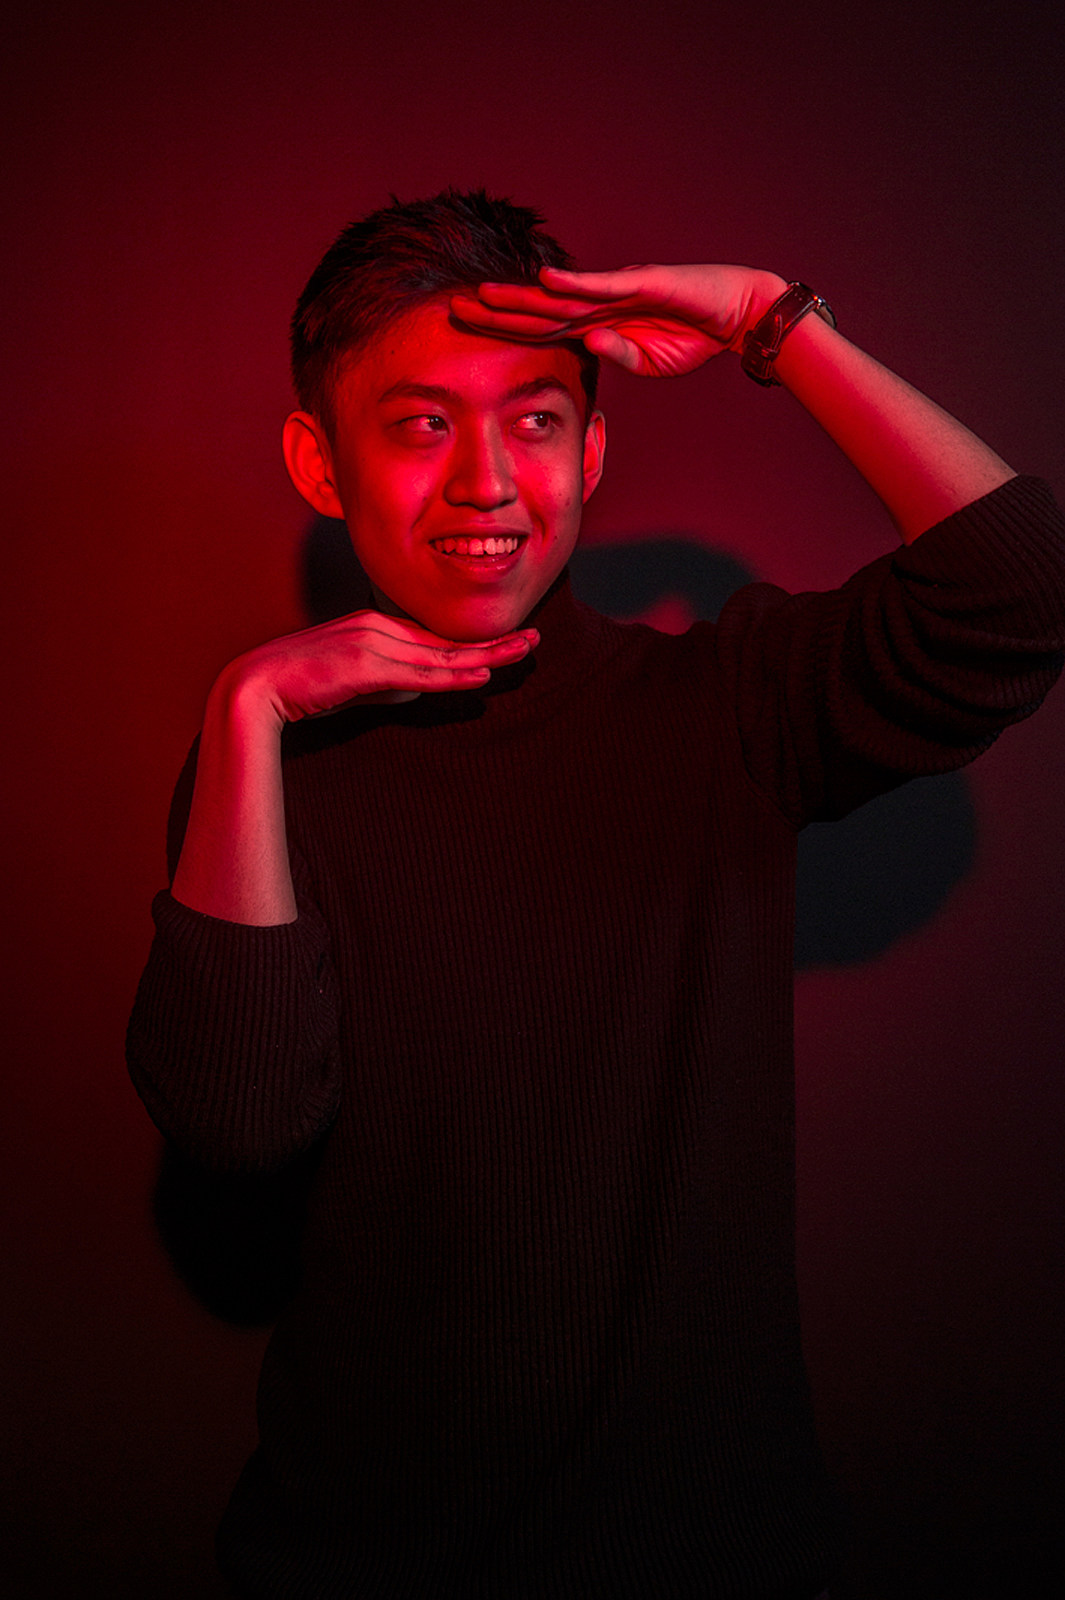 Rich chigga gets serious about rap xxl stopboris Image collections